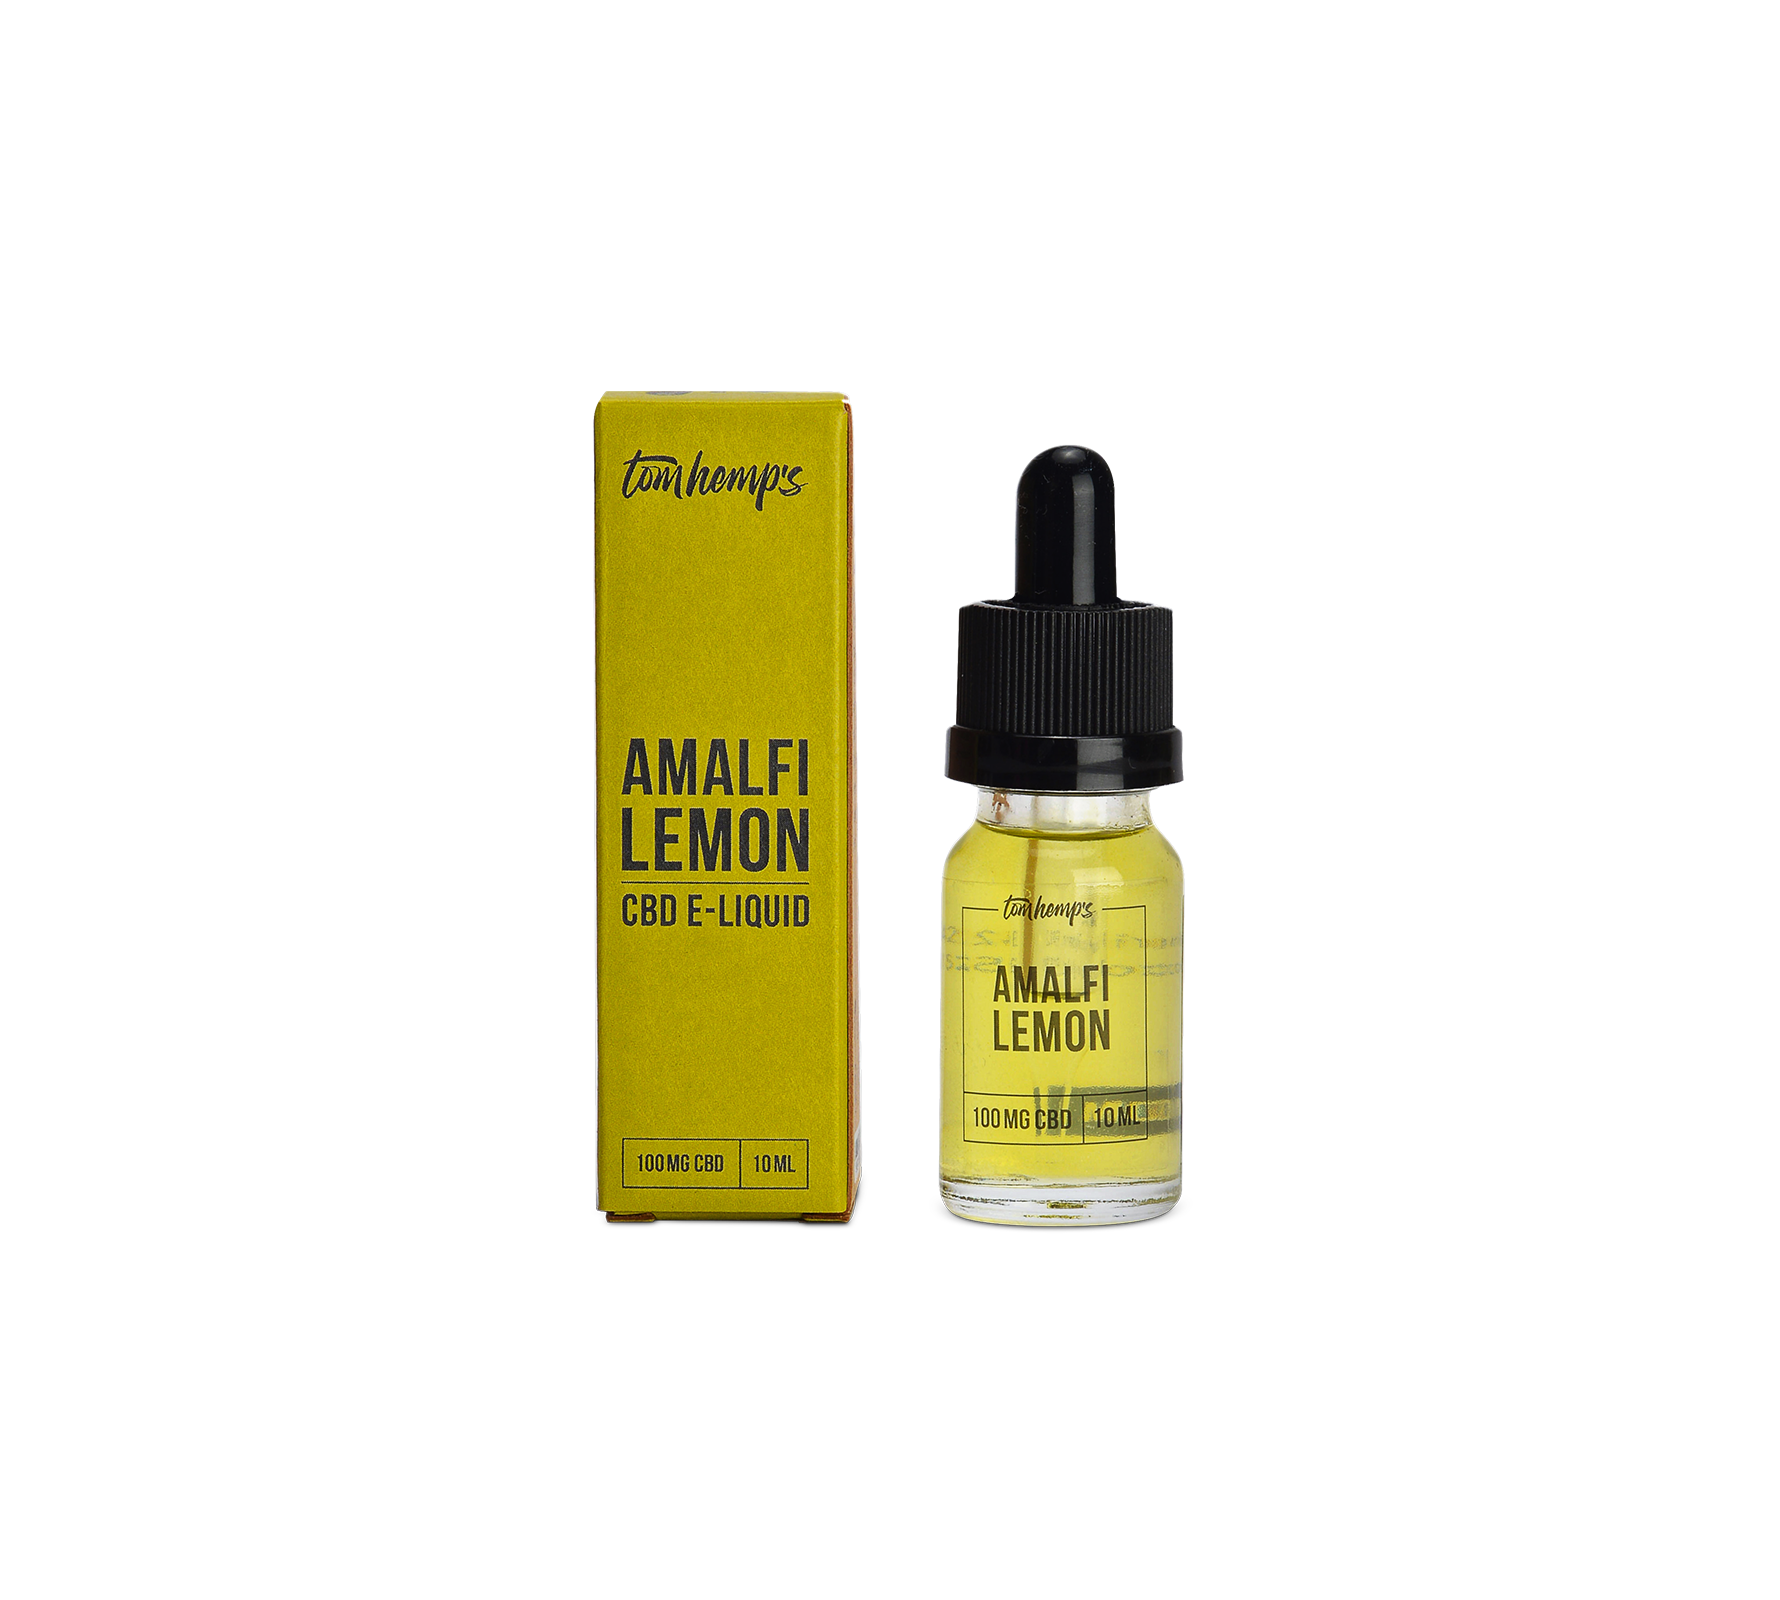 Tomhemps_CBD_E-Liquid_Amalfilemon_Pipette_Desktop_Detail_HD_1780x1600